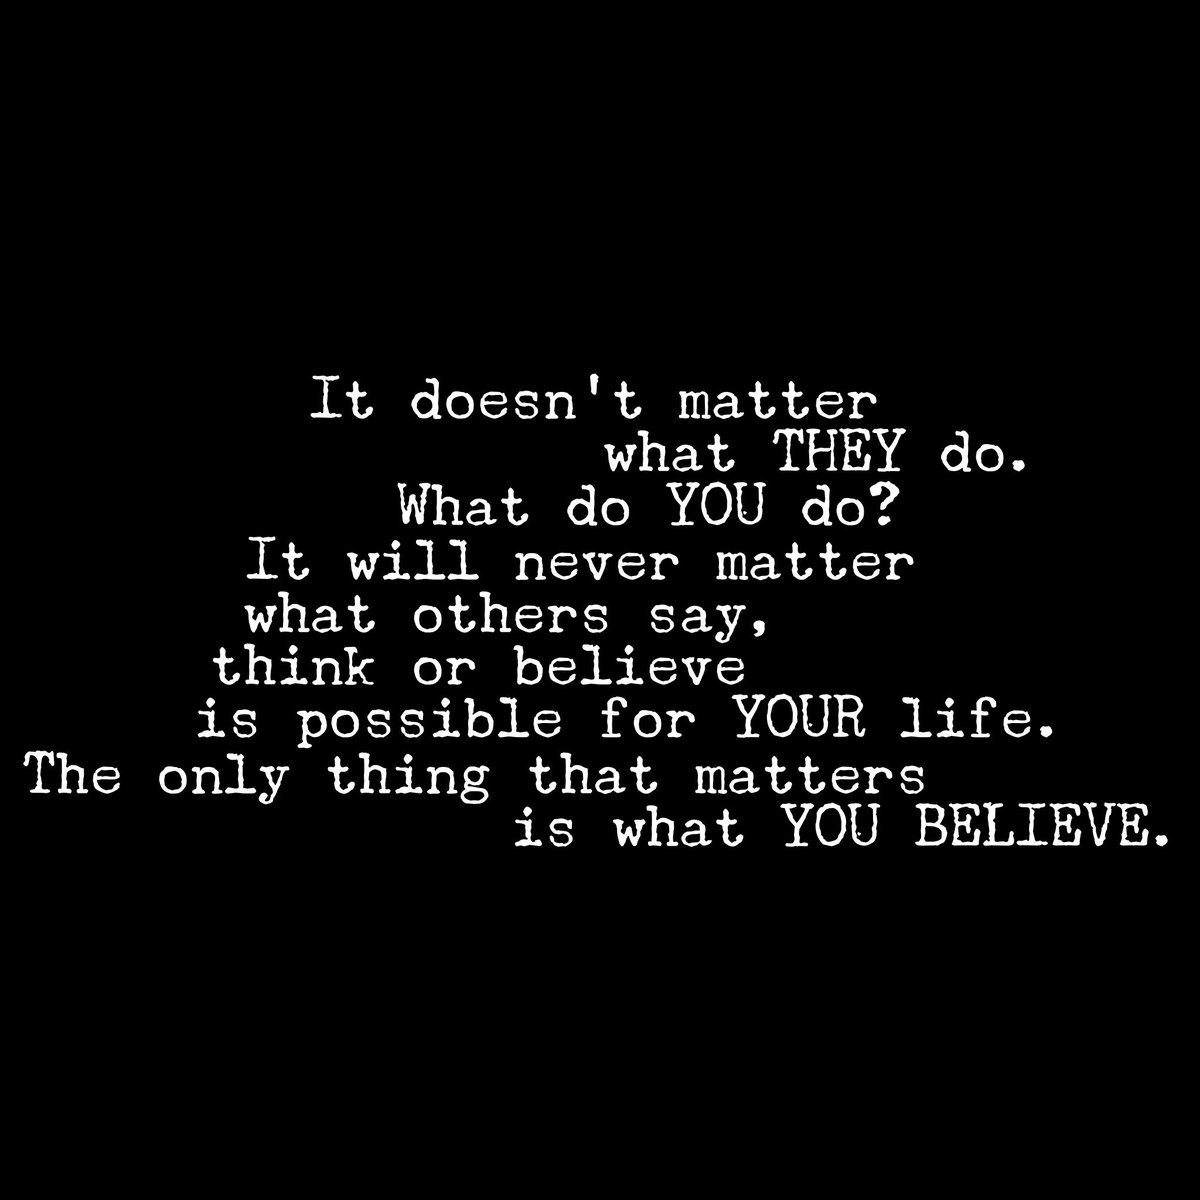 Don t matter what you say